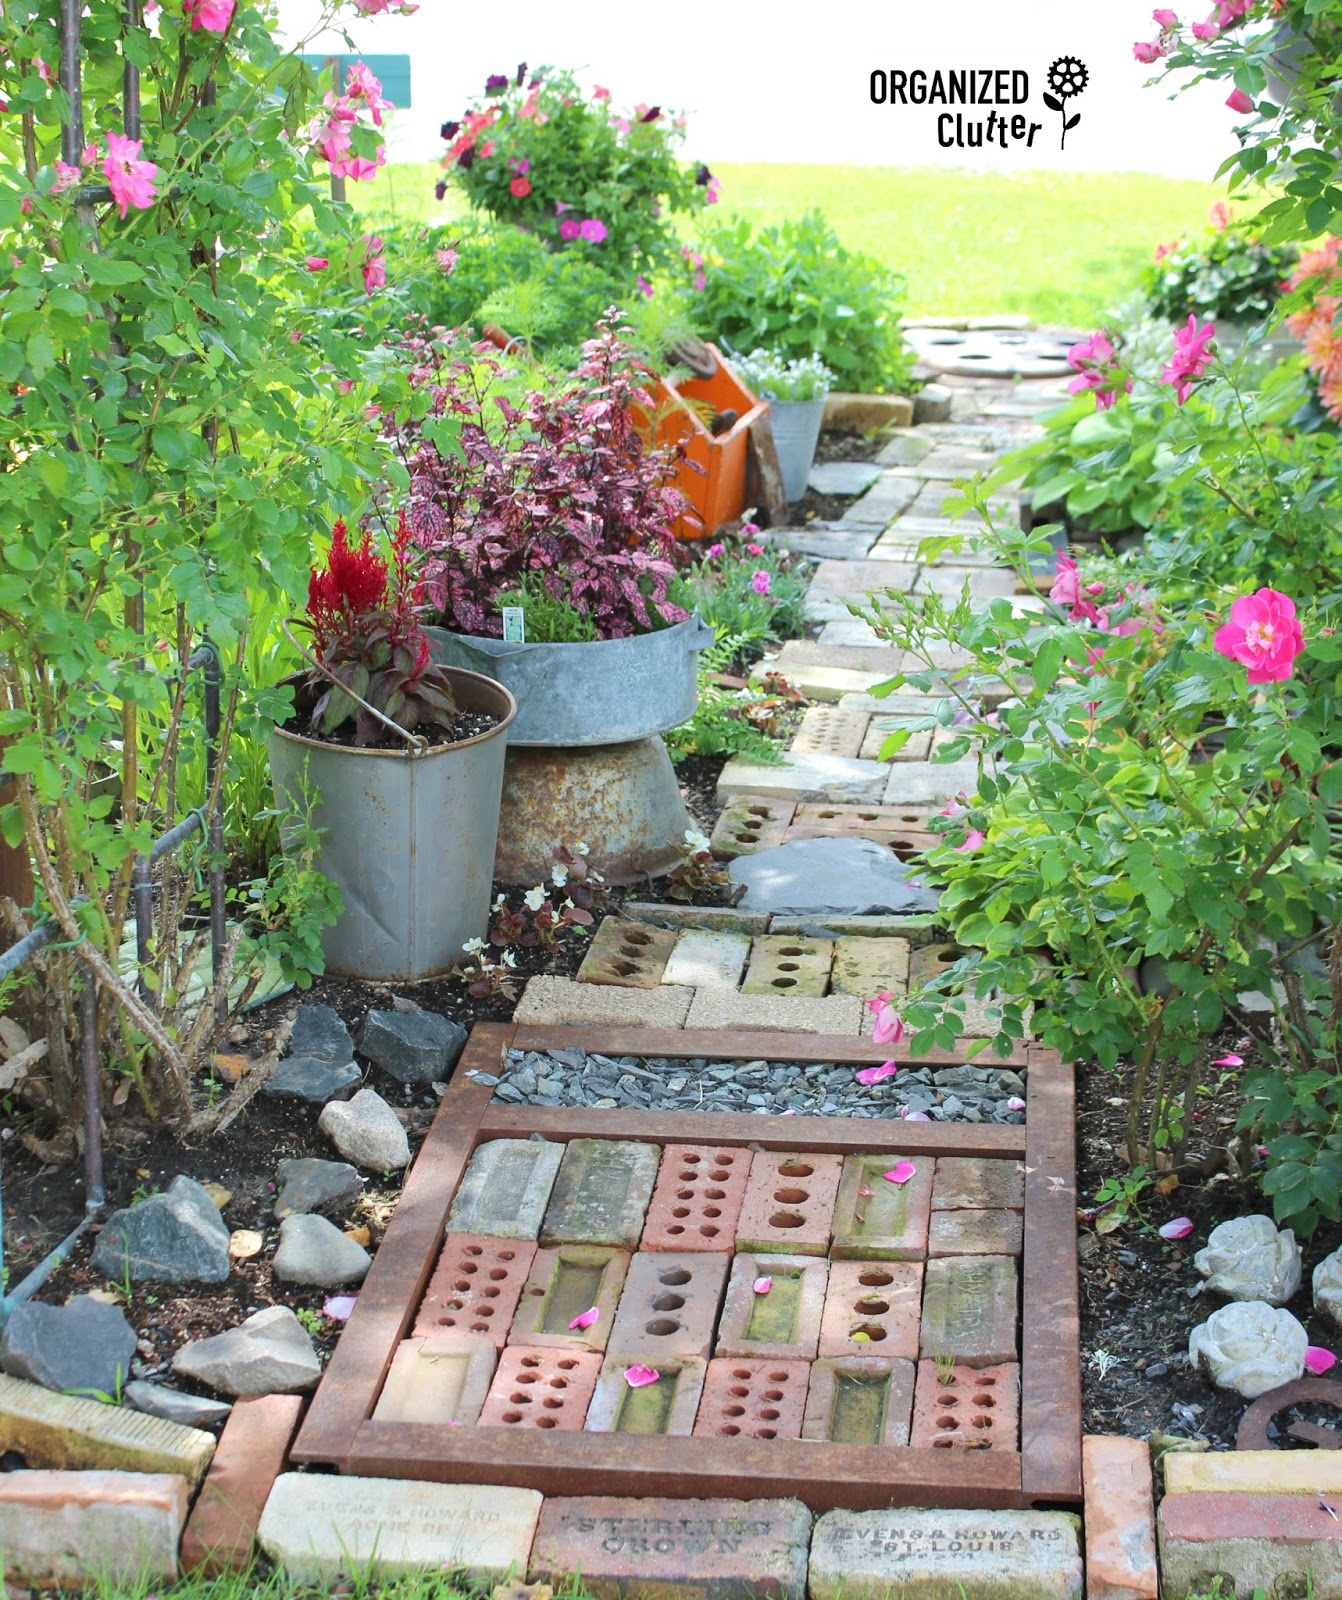 A Junk Garden Path Can Be A Work Of Art | Organized Clutter